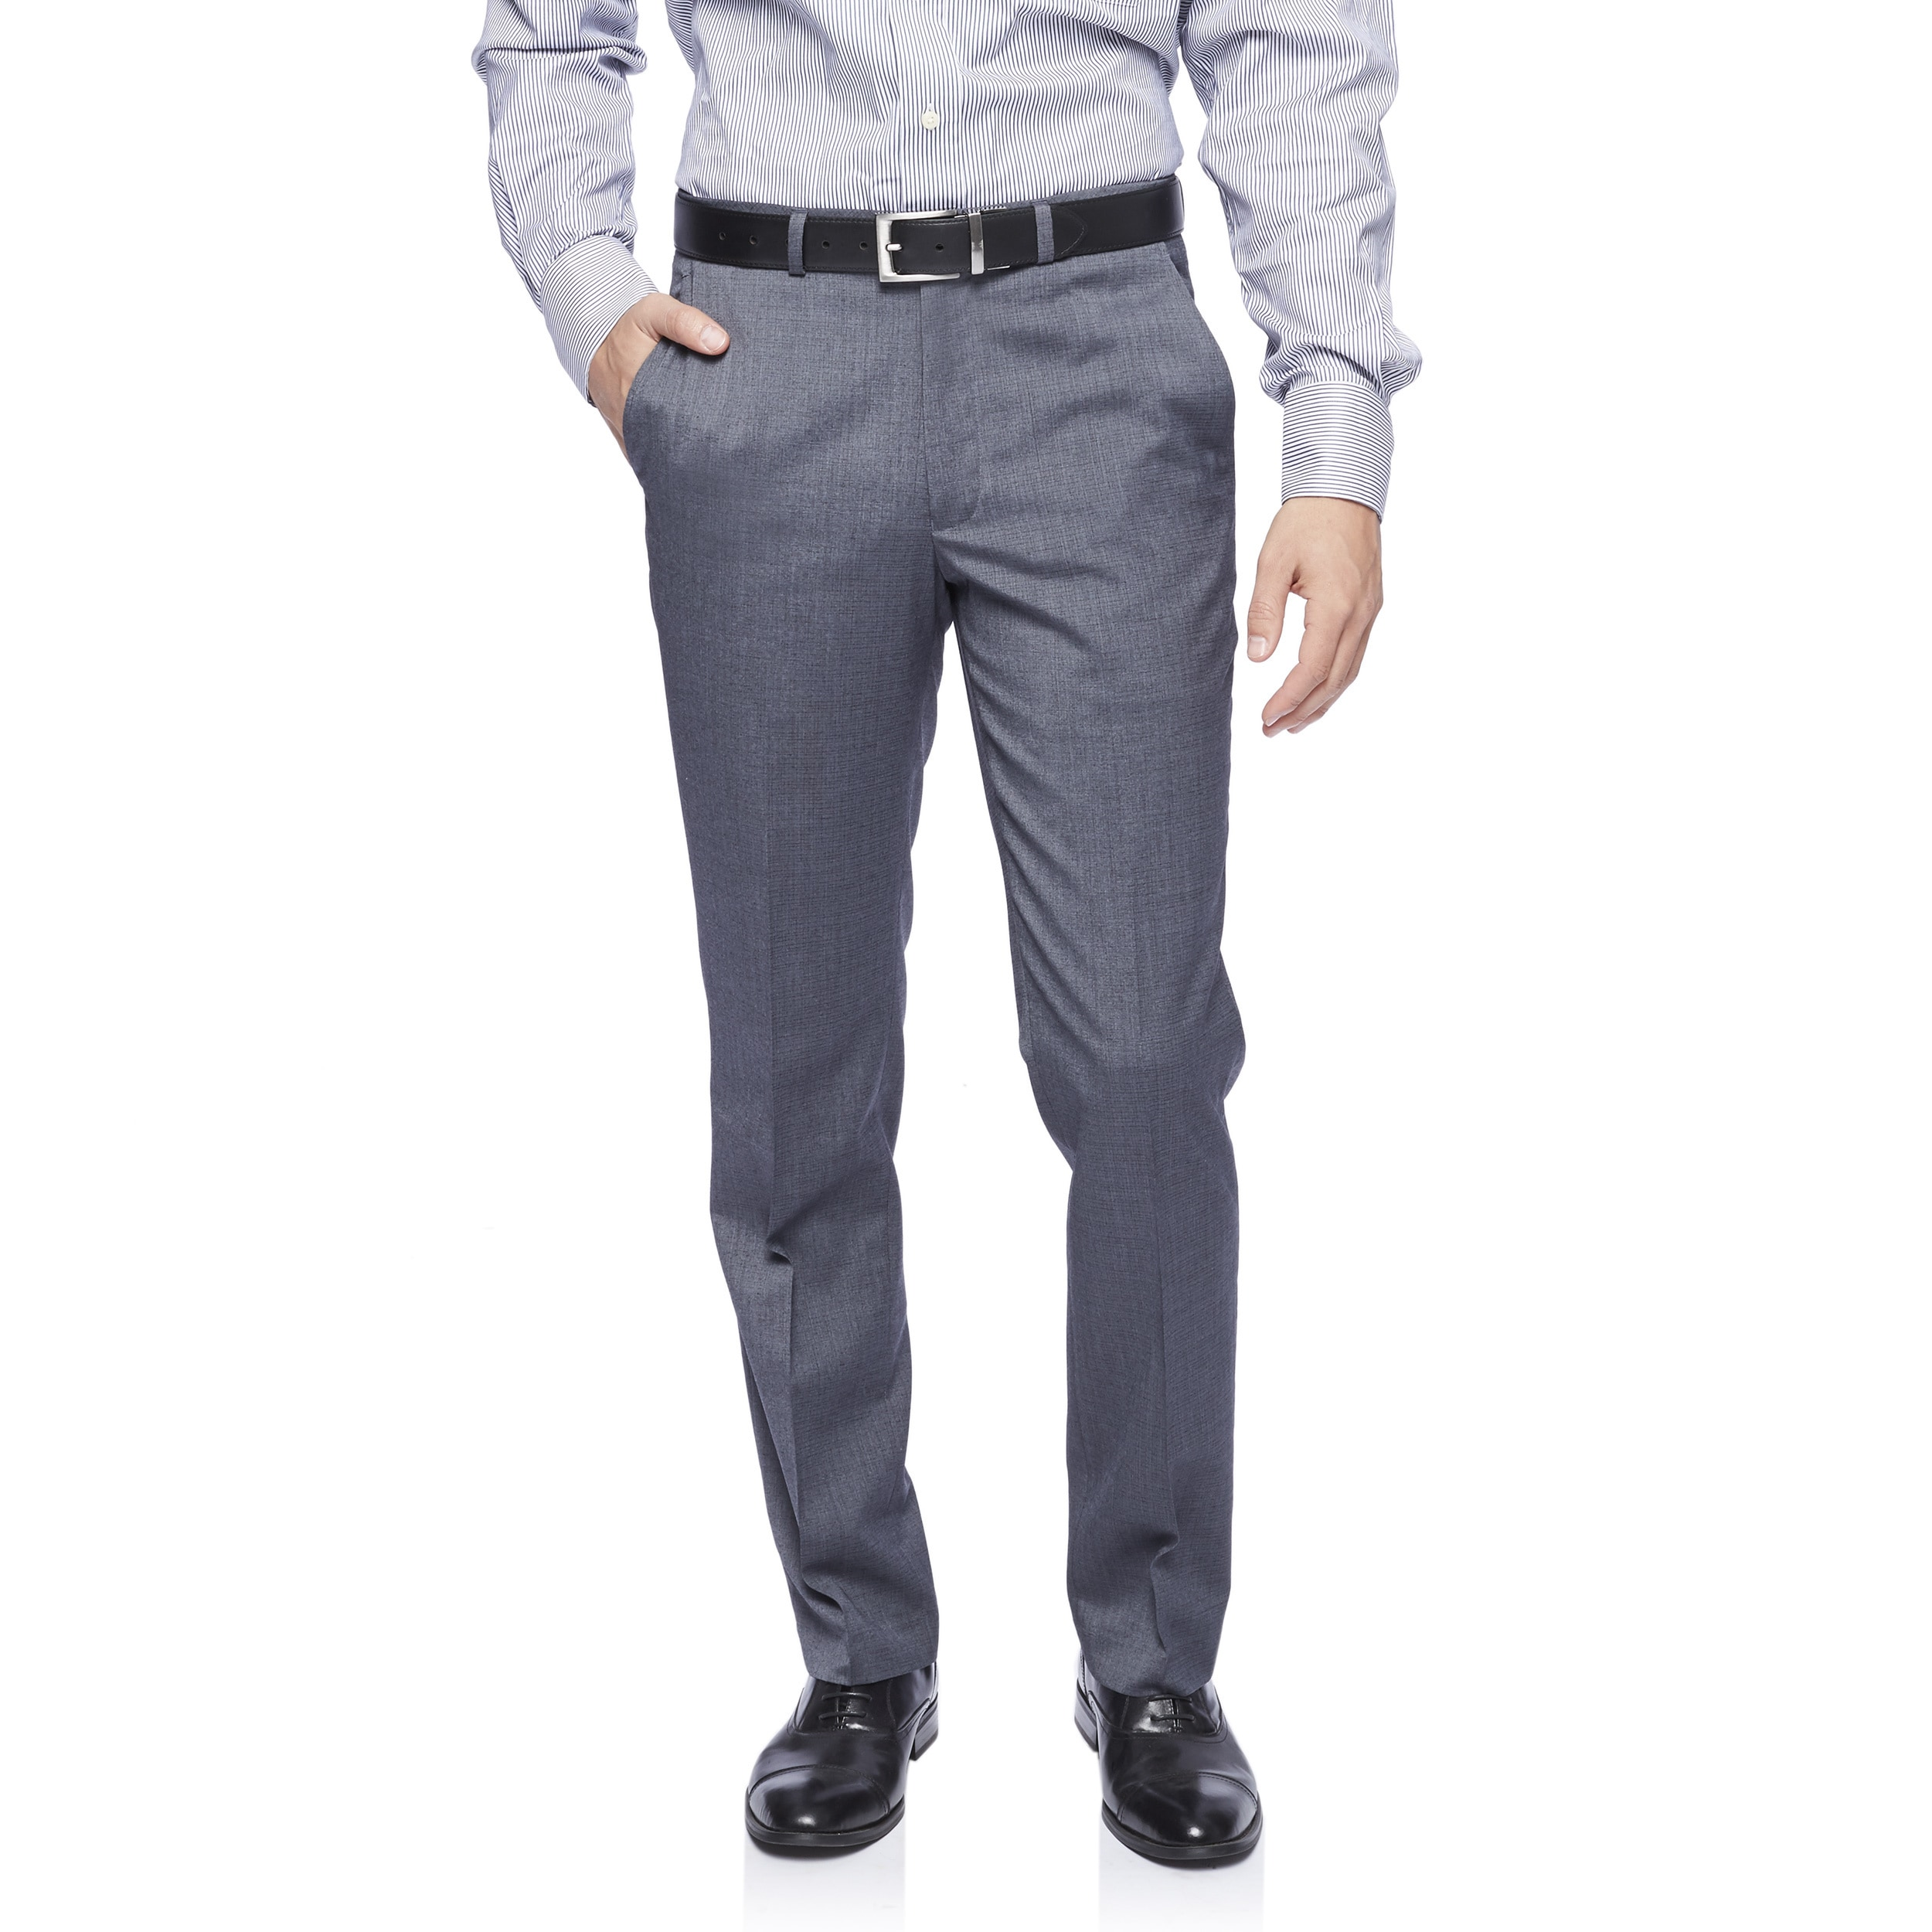 New Mens Kenneth Cole Reaction Burgundy Dress Wool Pants 35 X 32 12 Sale Overall Discount 50-70% Men's Clothing Clothing, Shoes & Accessories